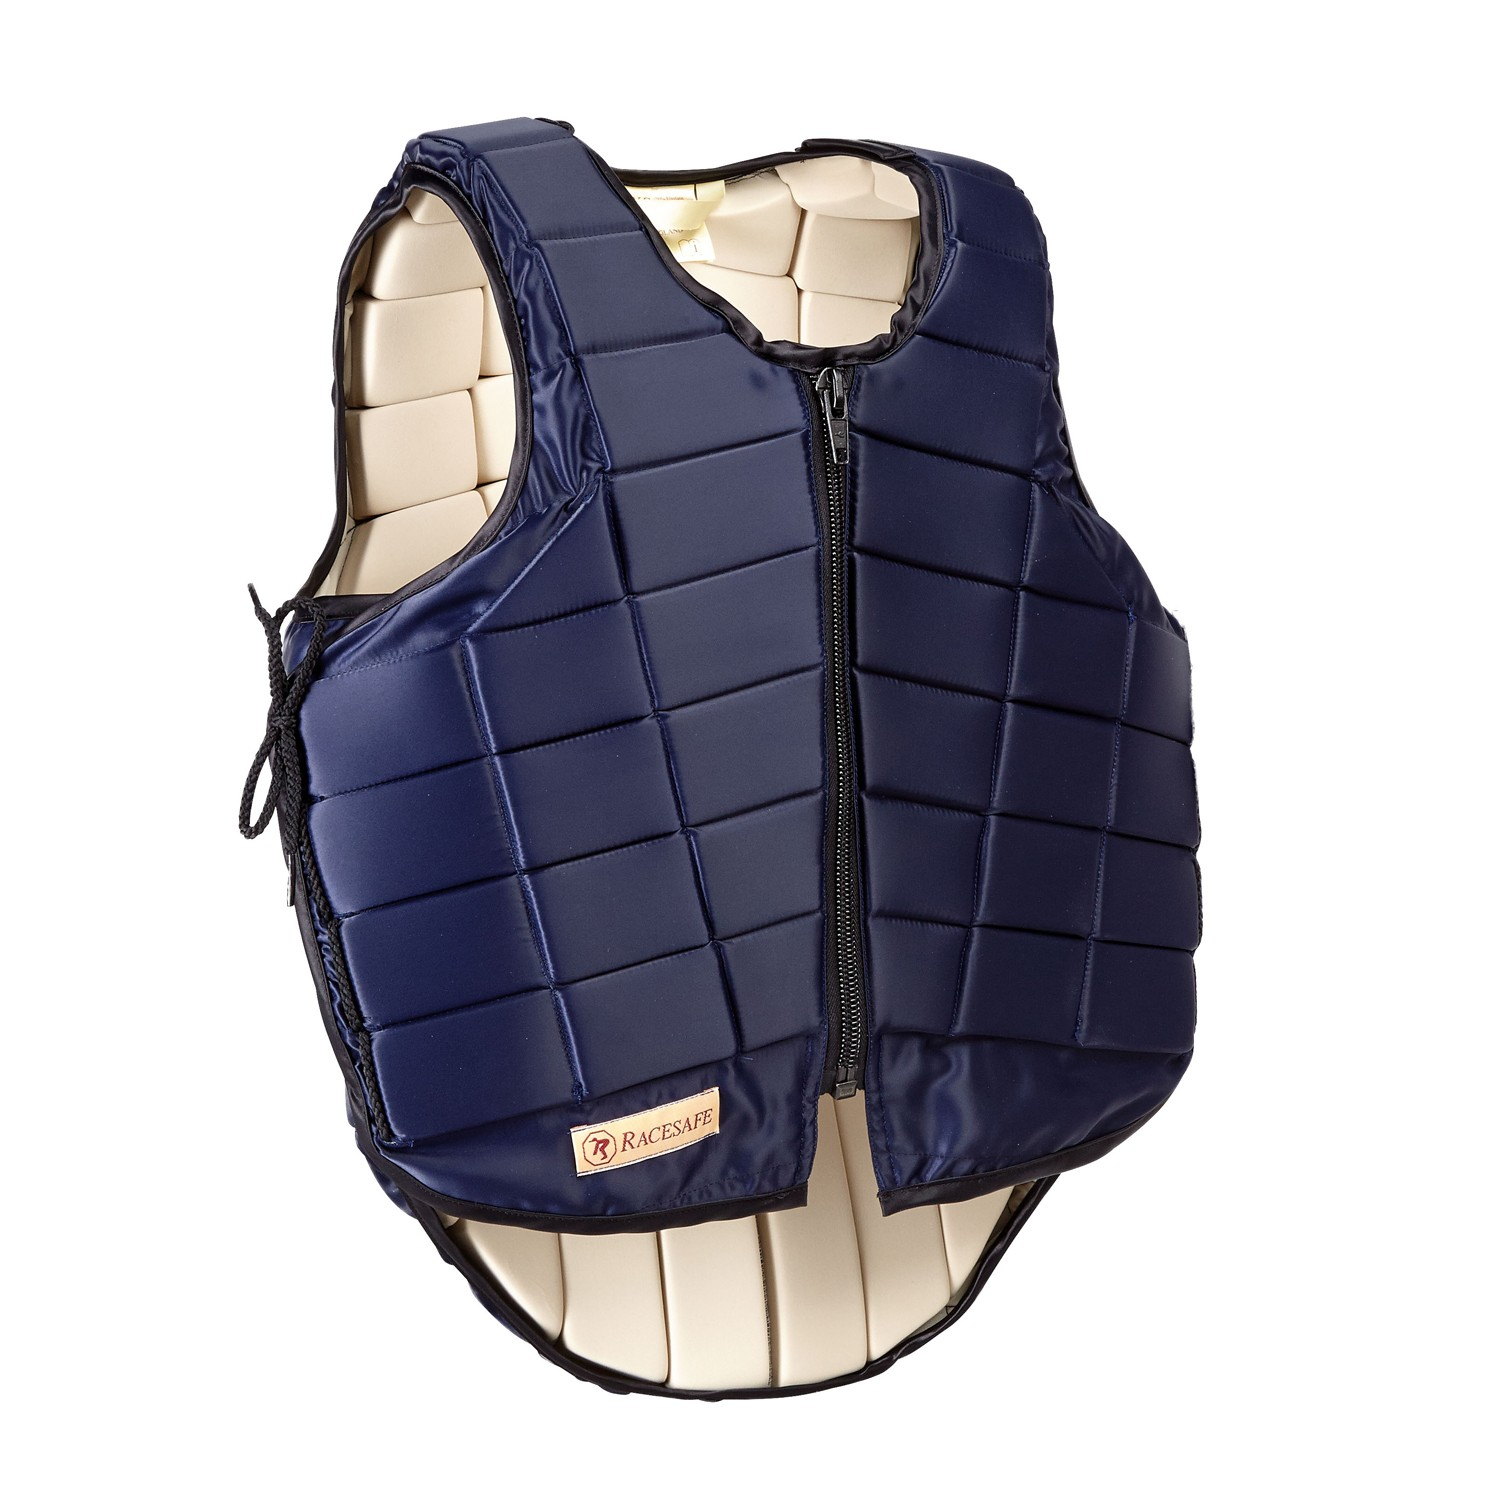 Racesafe Adults Rs2010 Body Protector Wychanger Barton